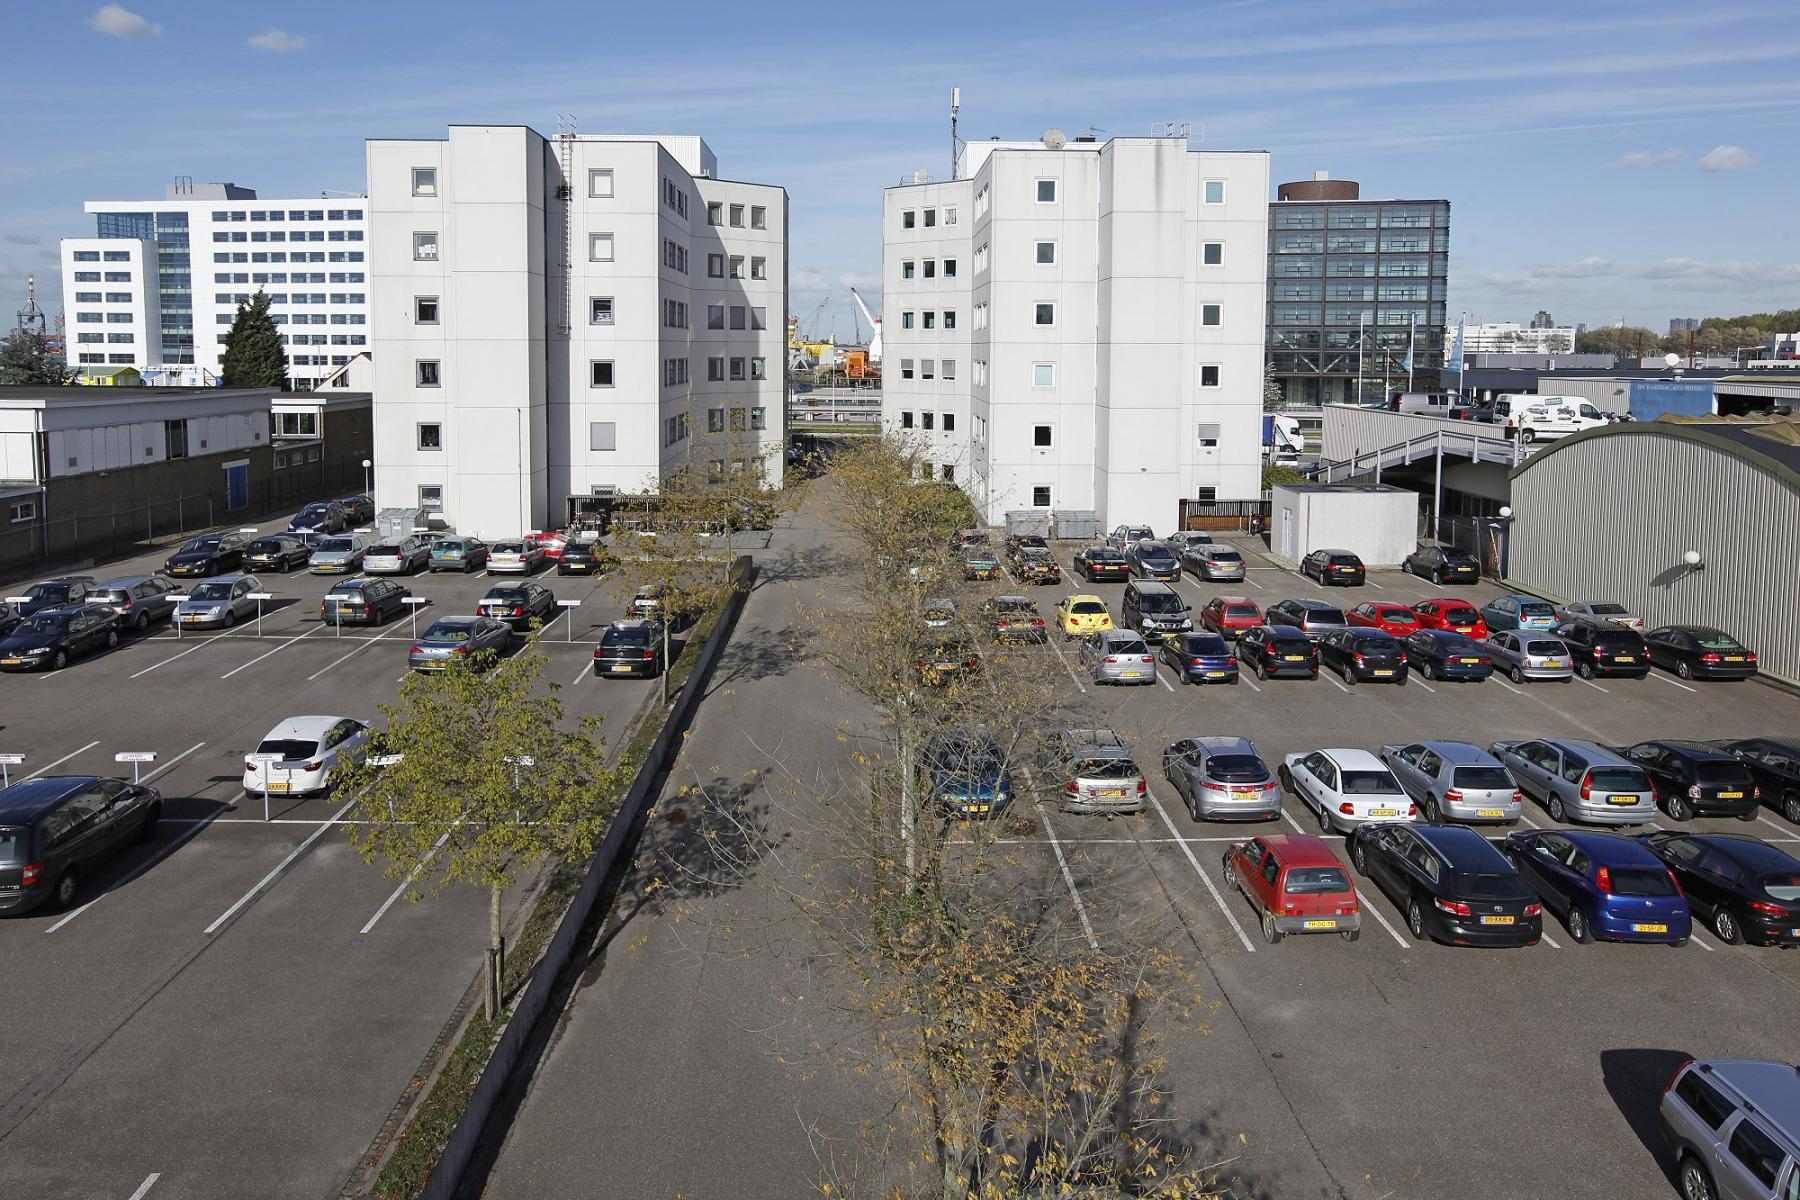 two white office buildings cars parking spots